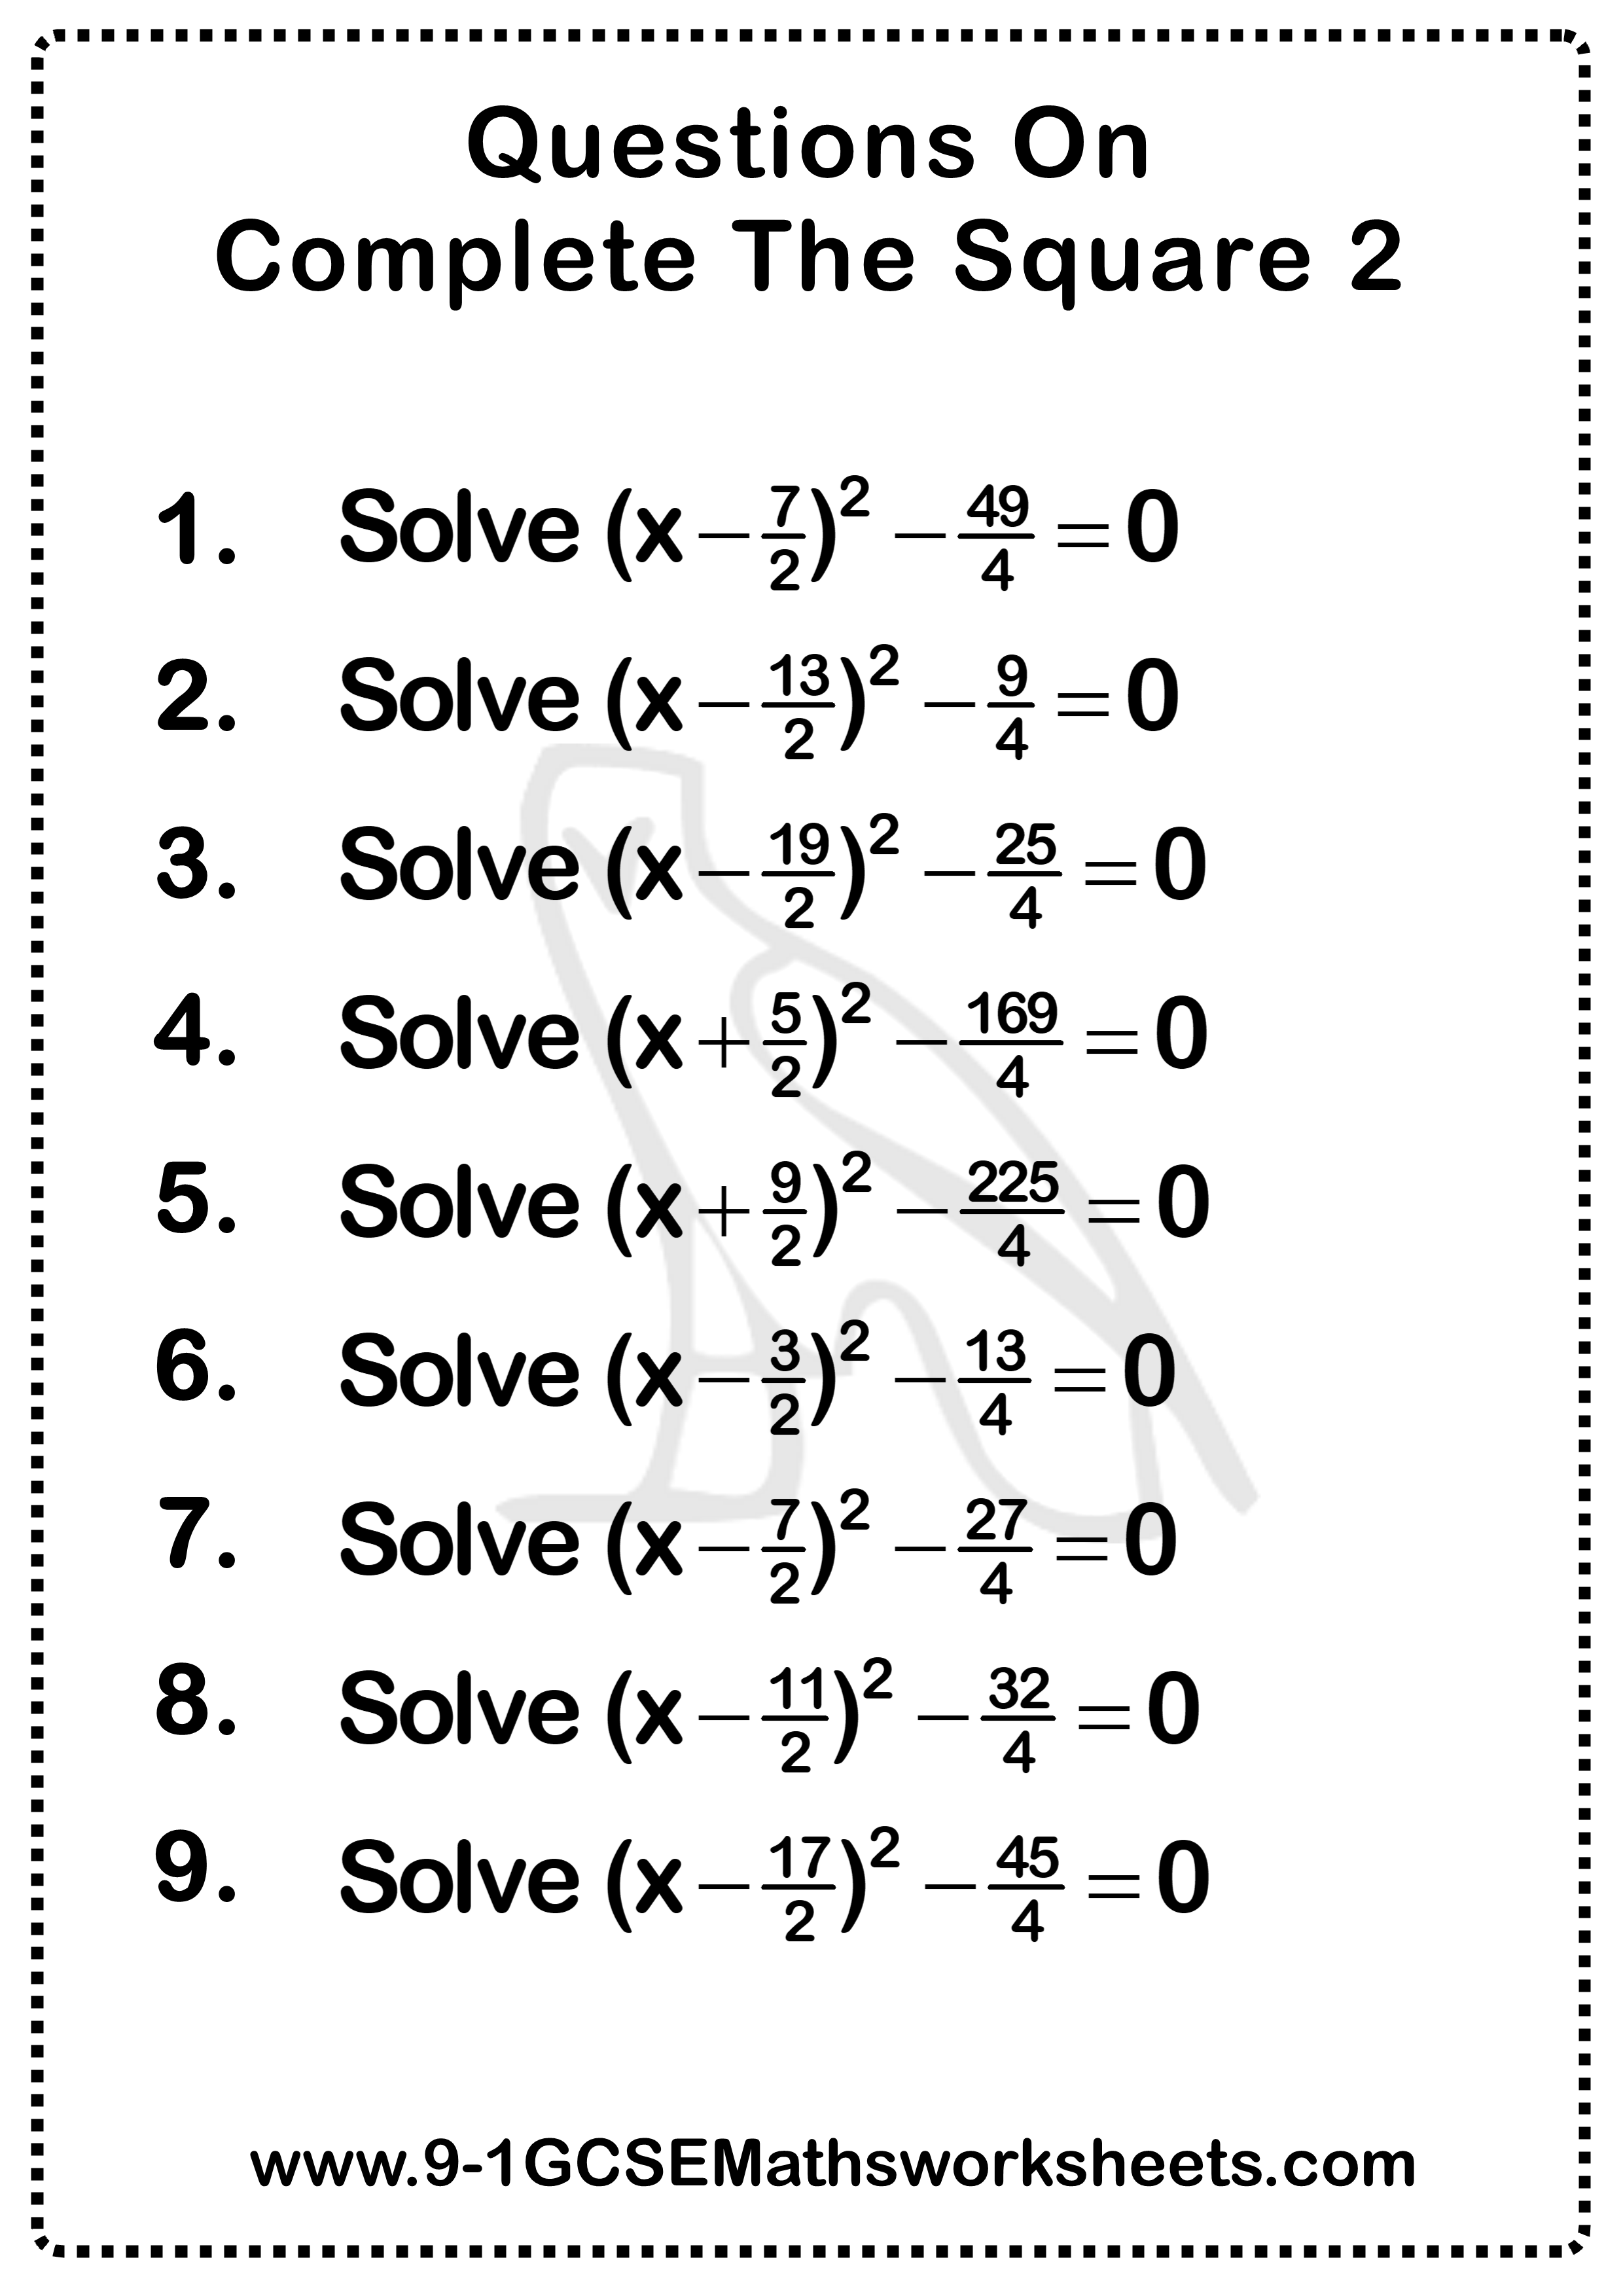 Completing The Square Questions 2 In